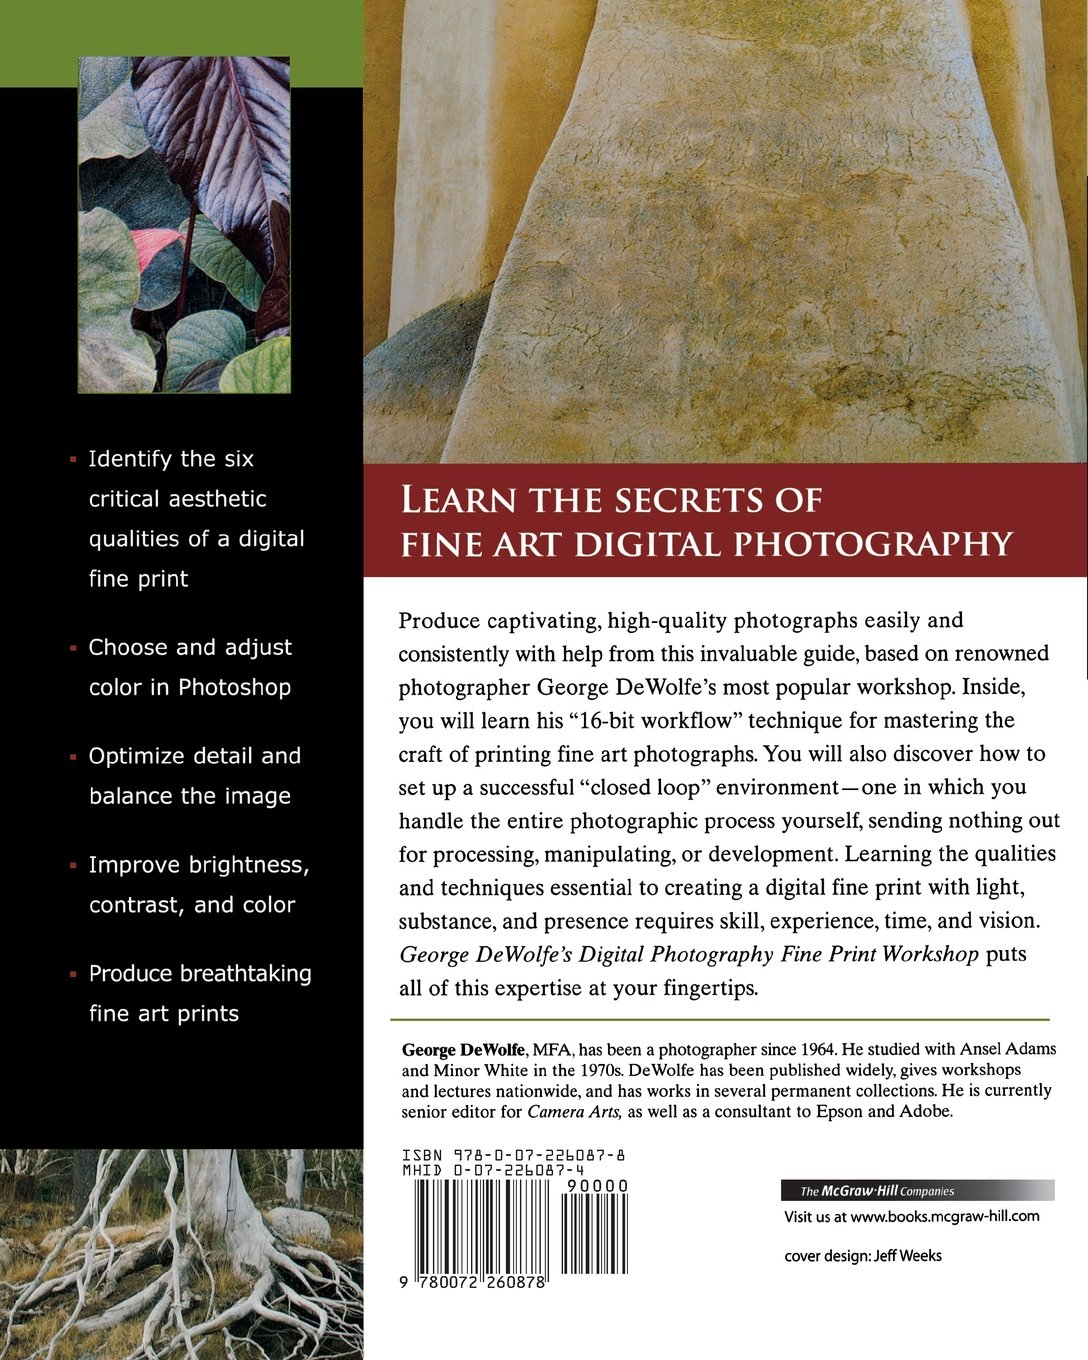 George DeWolfe's Digital Photography Fine Print Workshop by McGraw-Hill Education